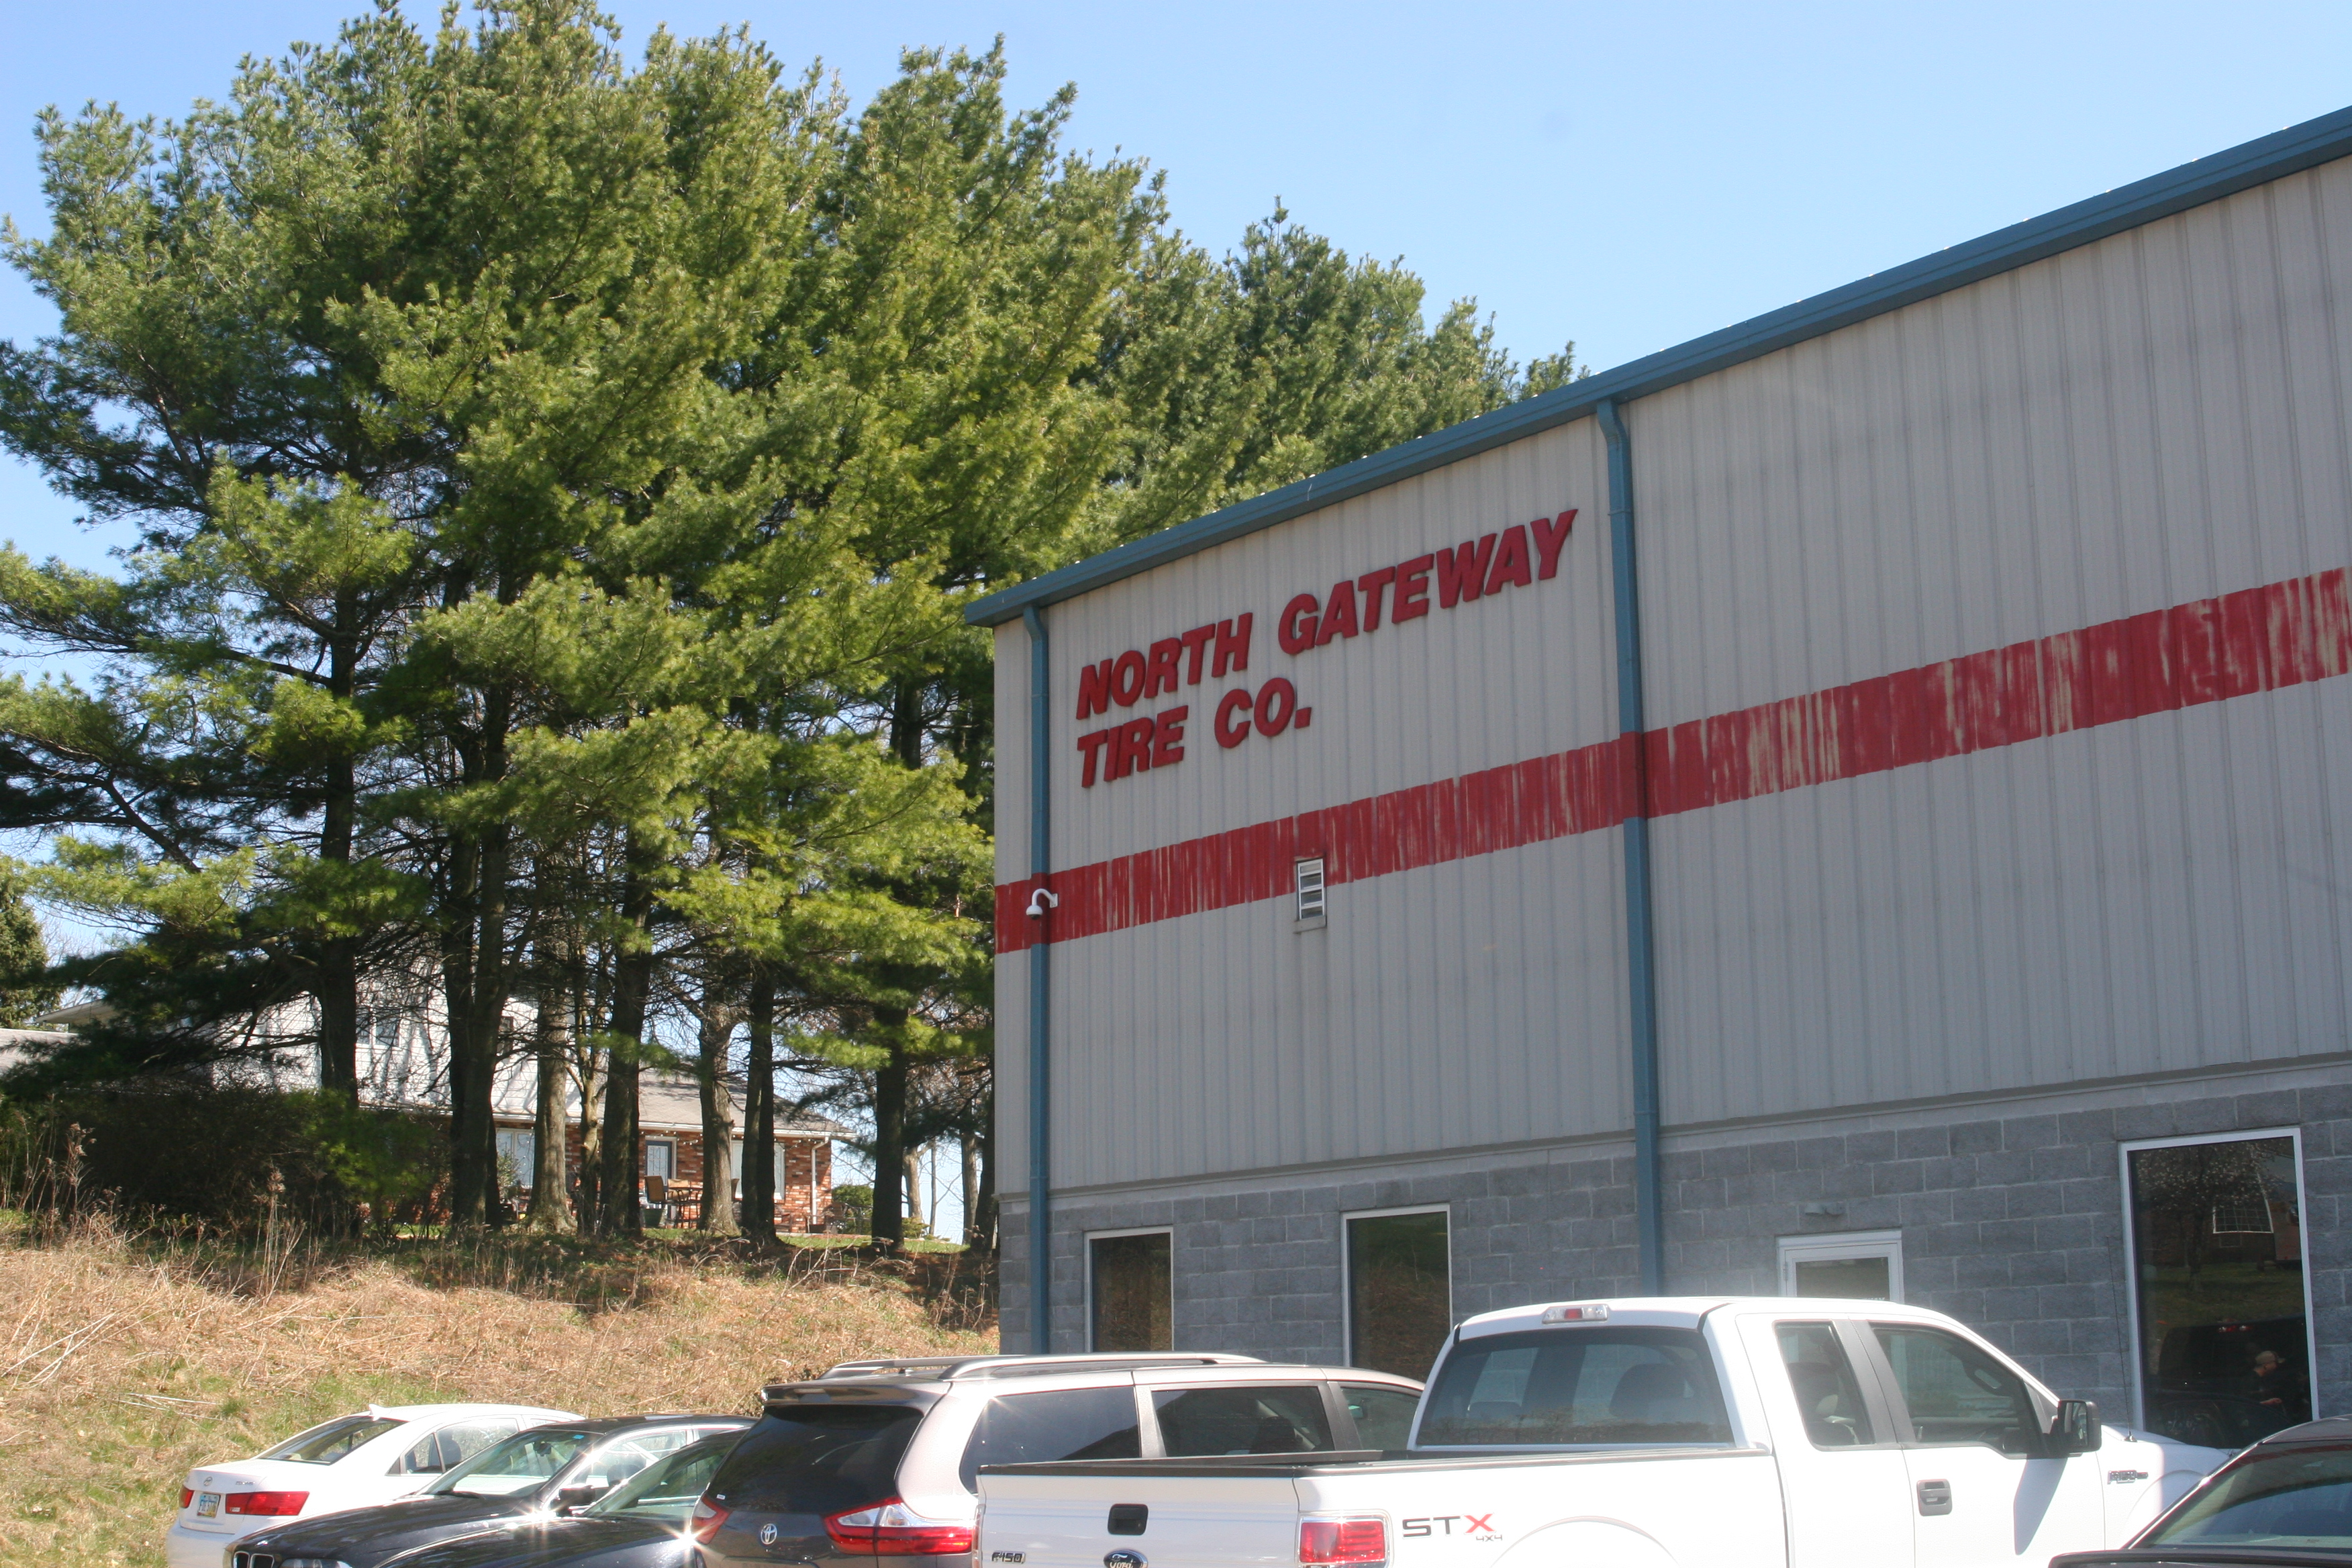 North Gateway Tire Holds Open House